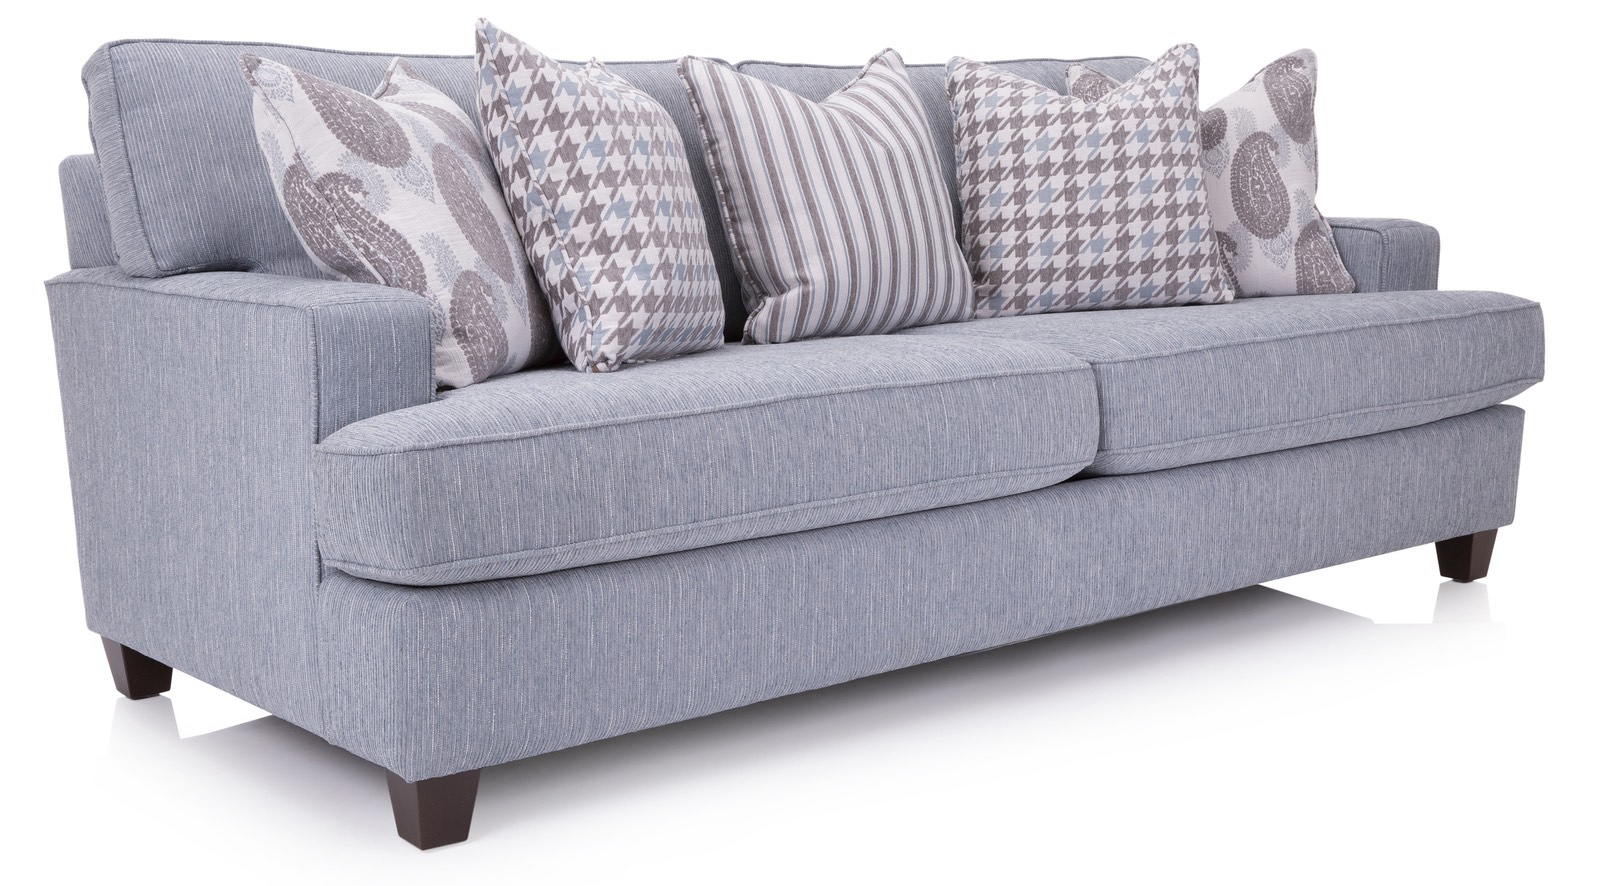 blue two seat sofa with two legs and five different textures pillows